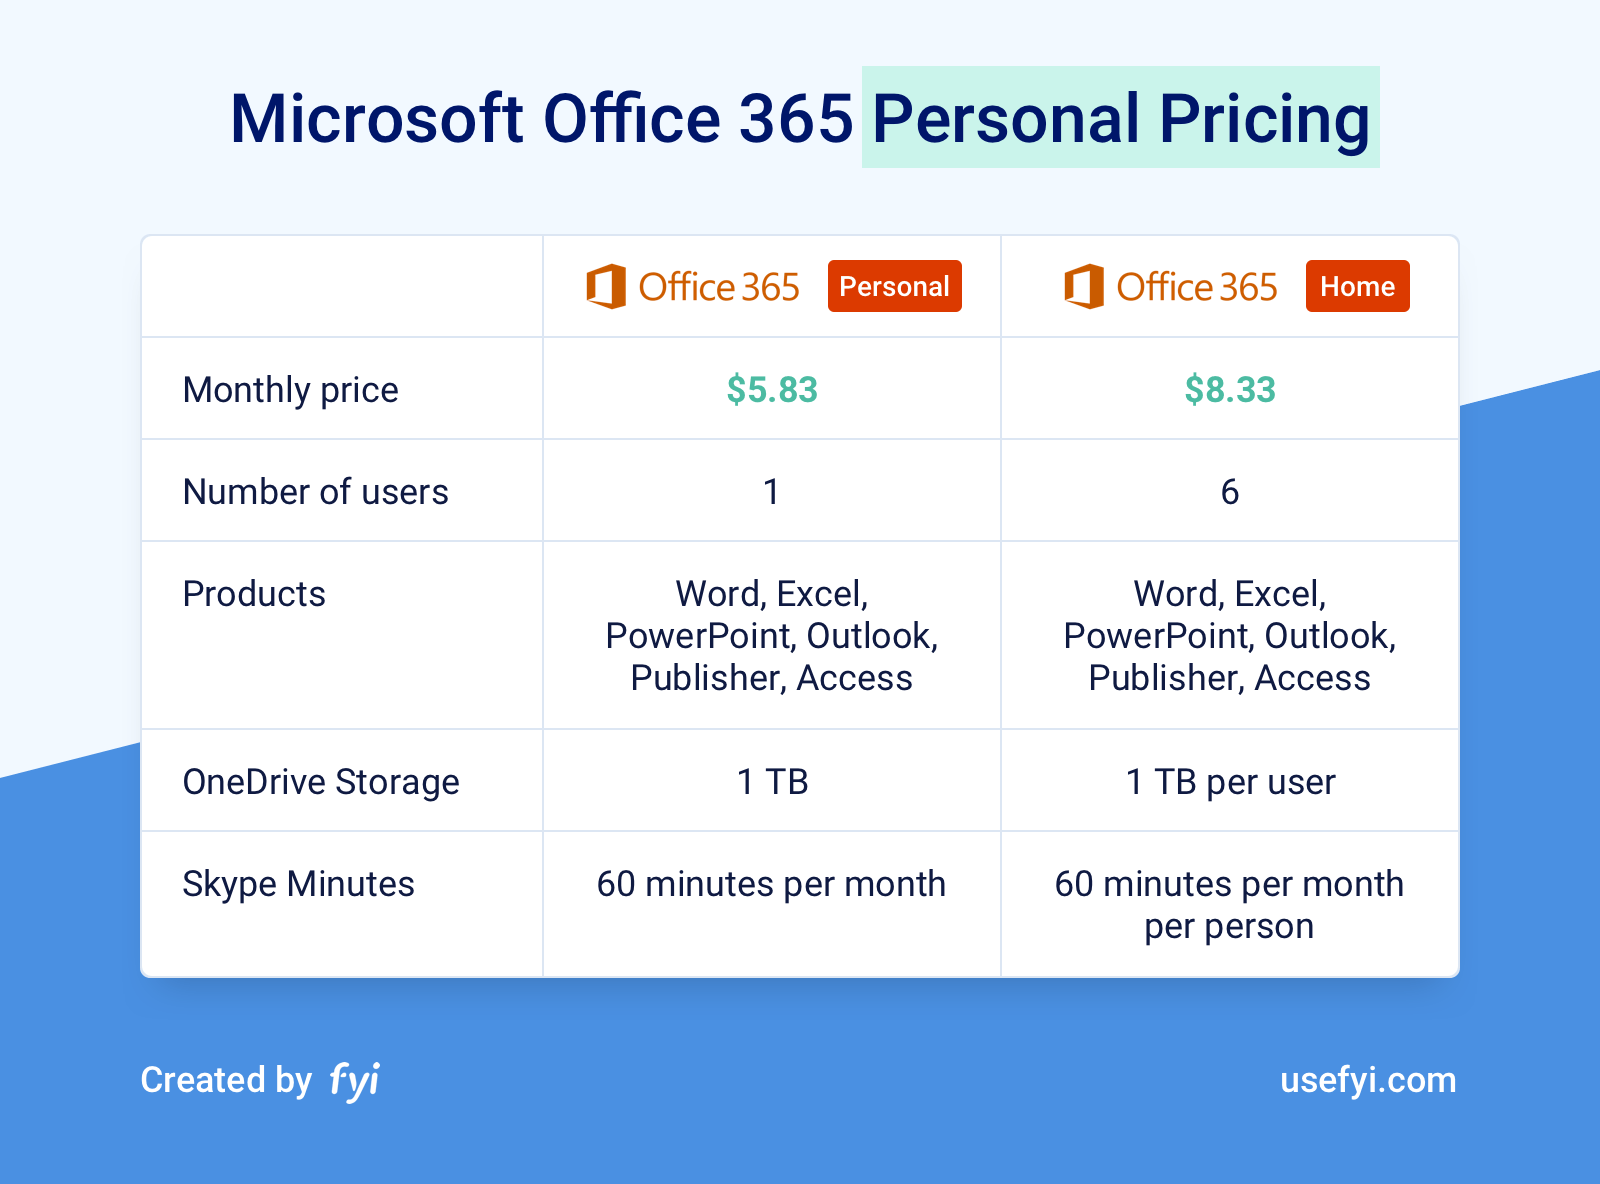 Office 365 Personal Pricing Plans